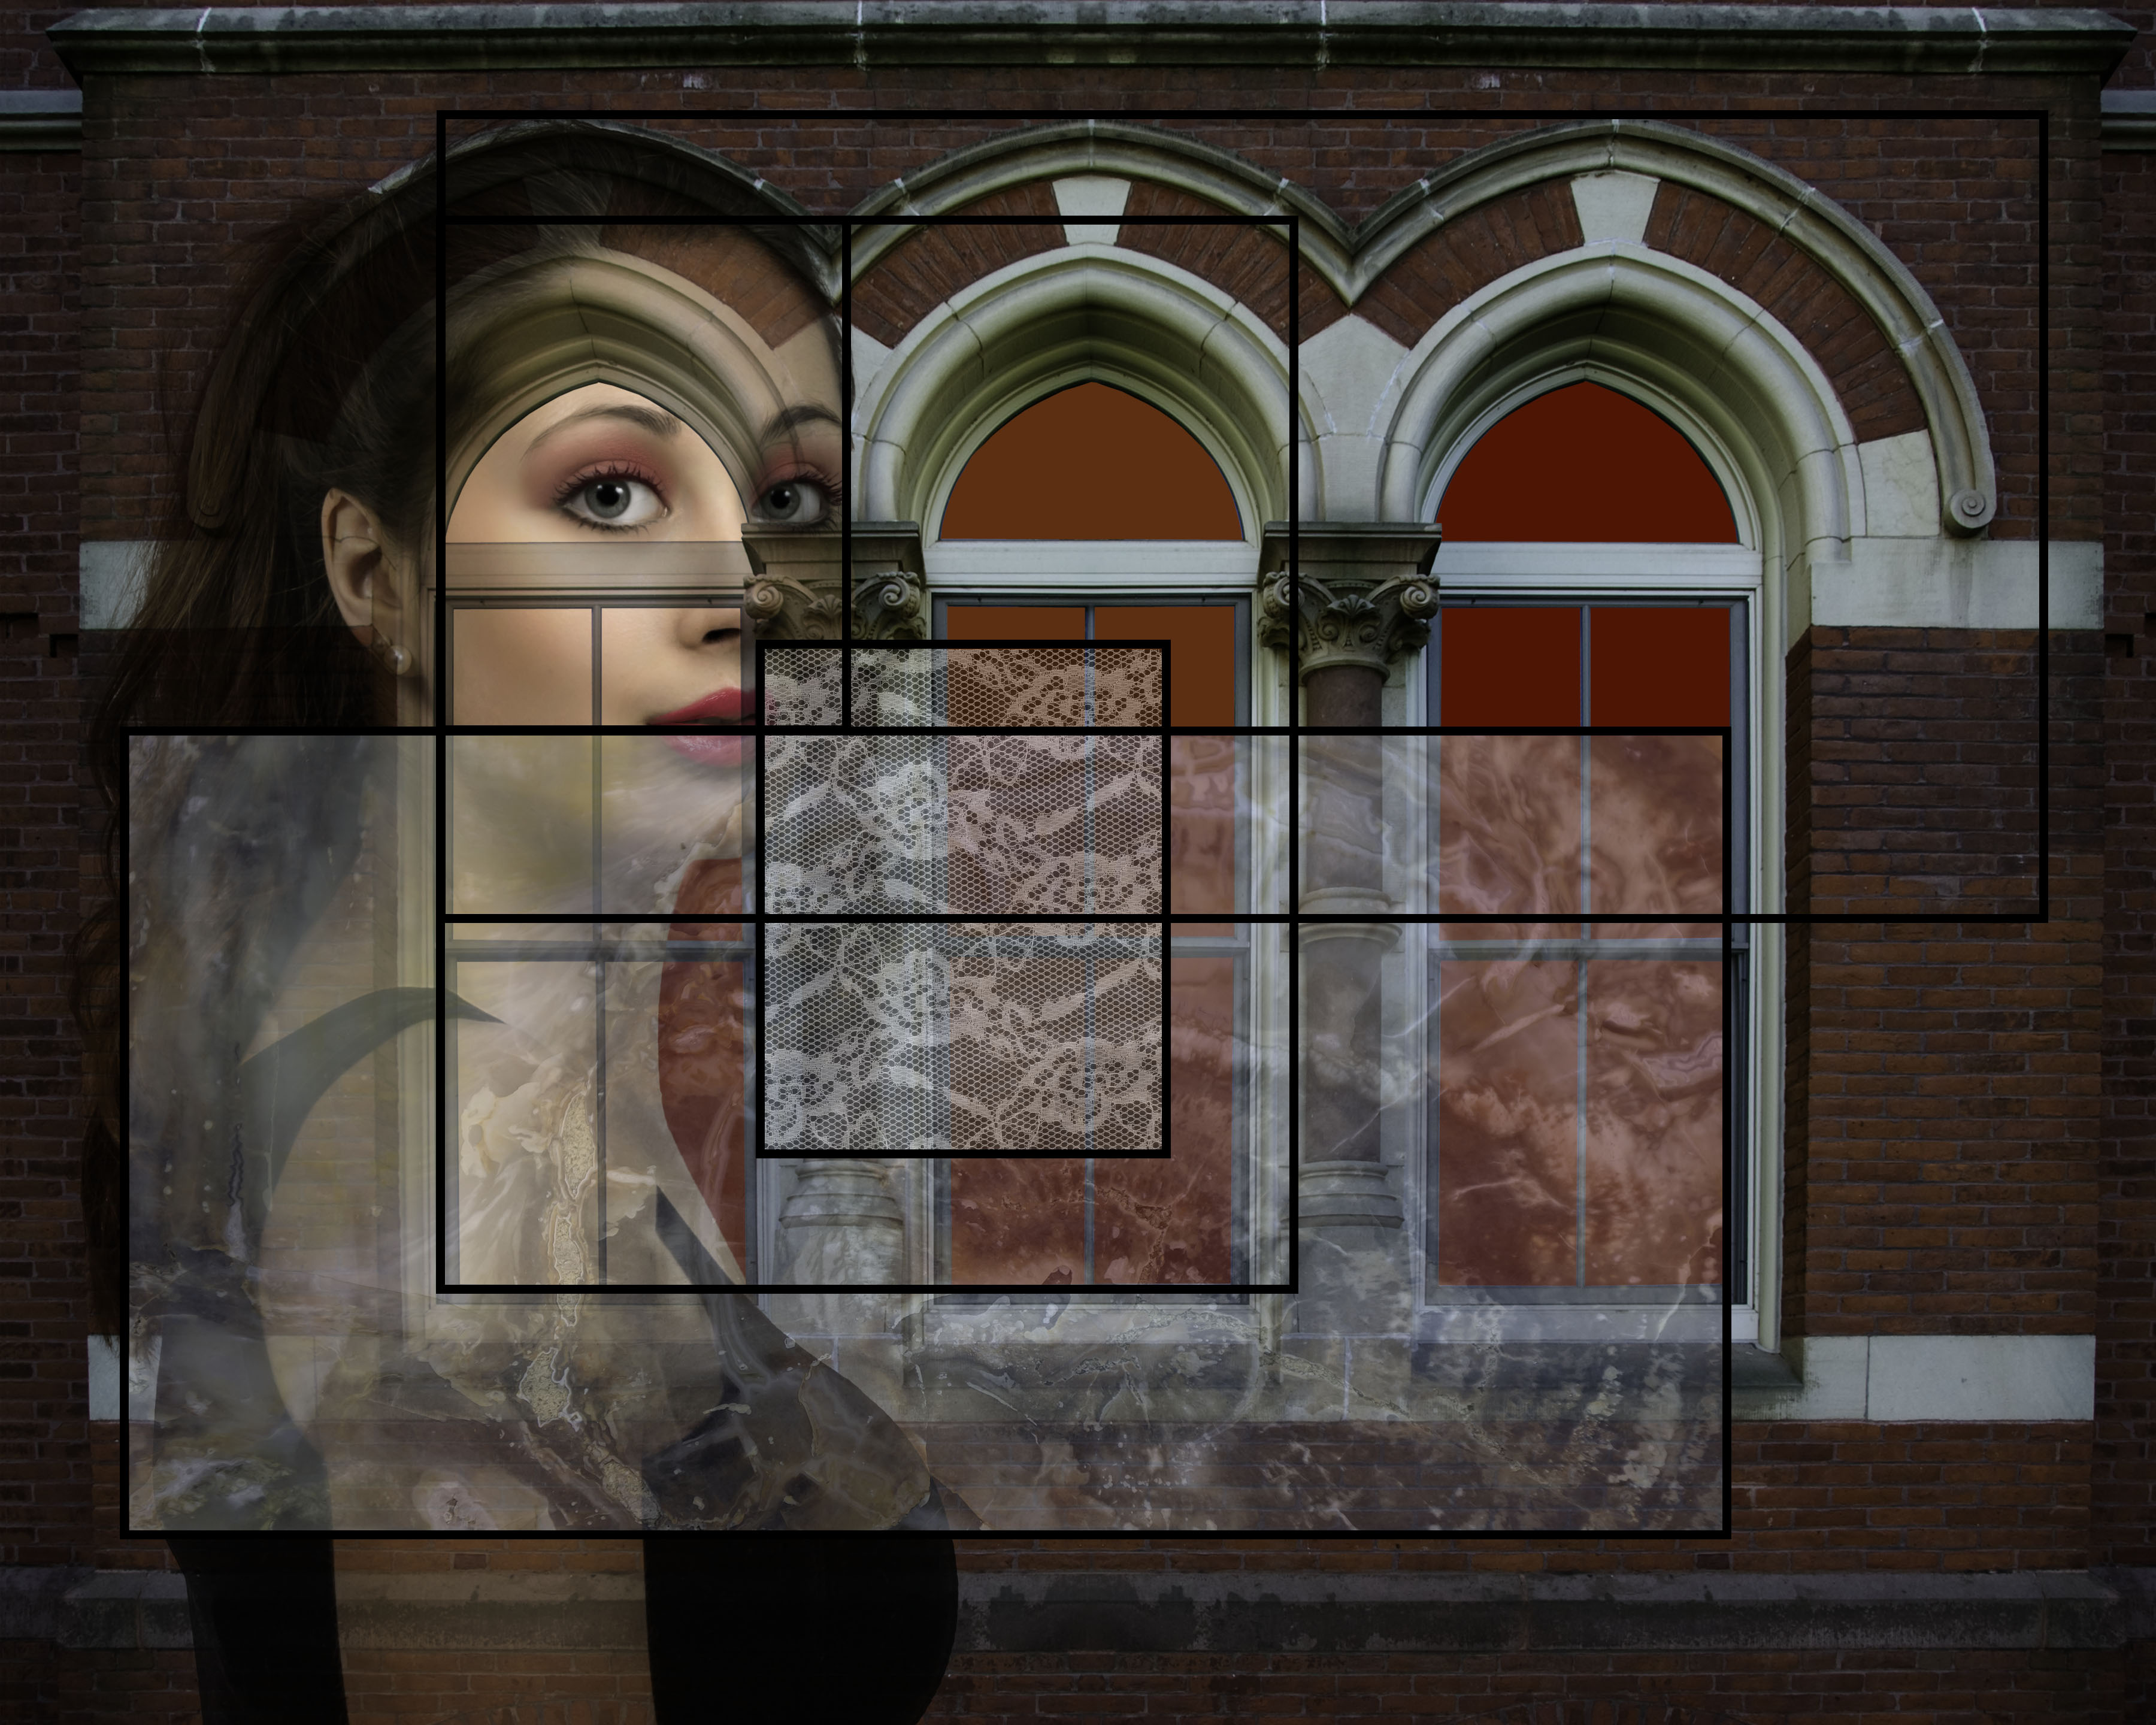 Girl in Stained Glass